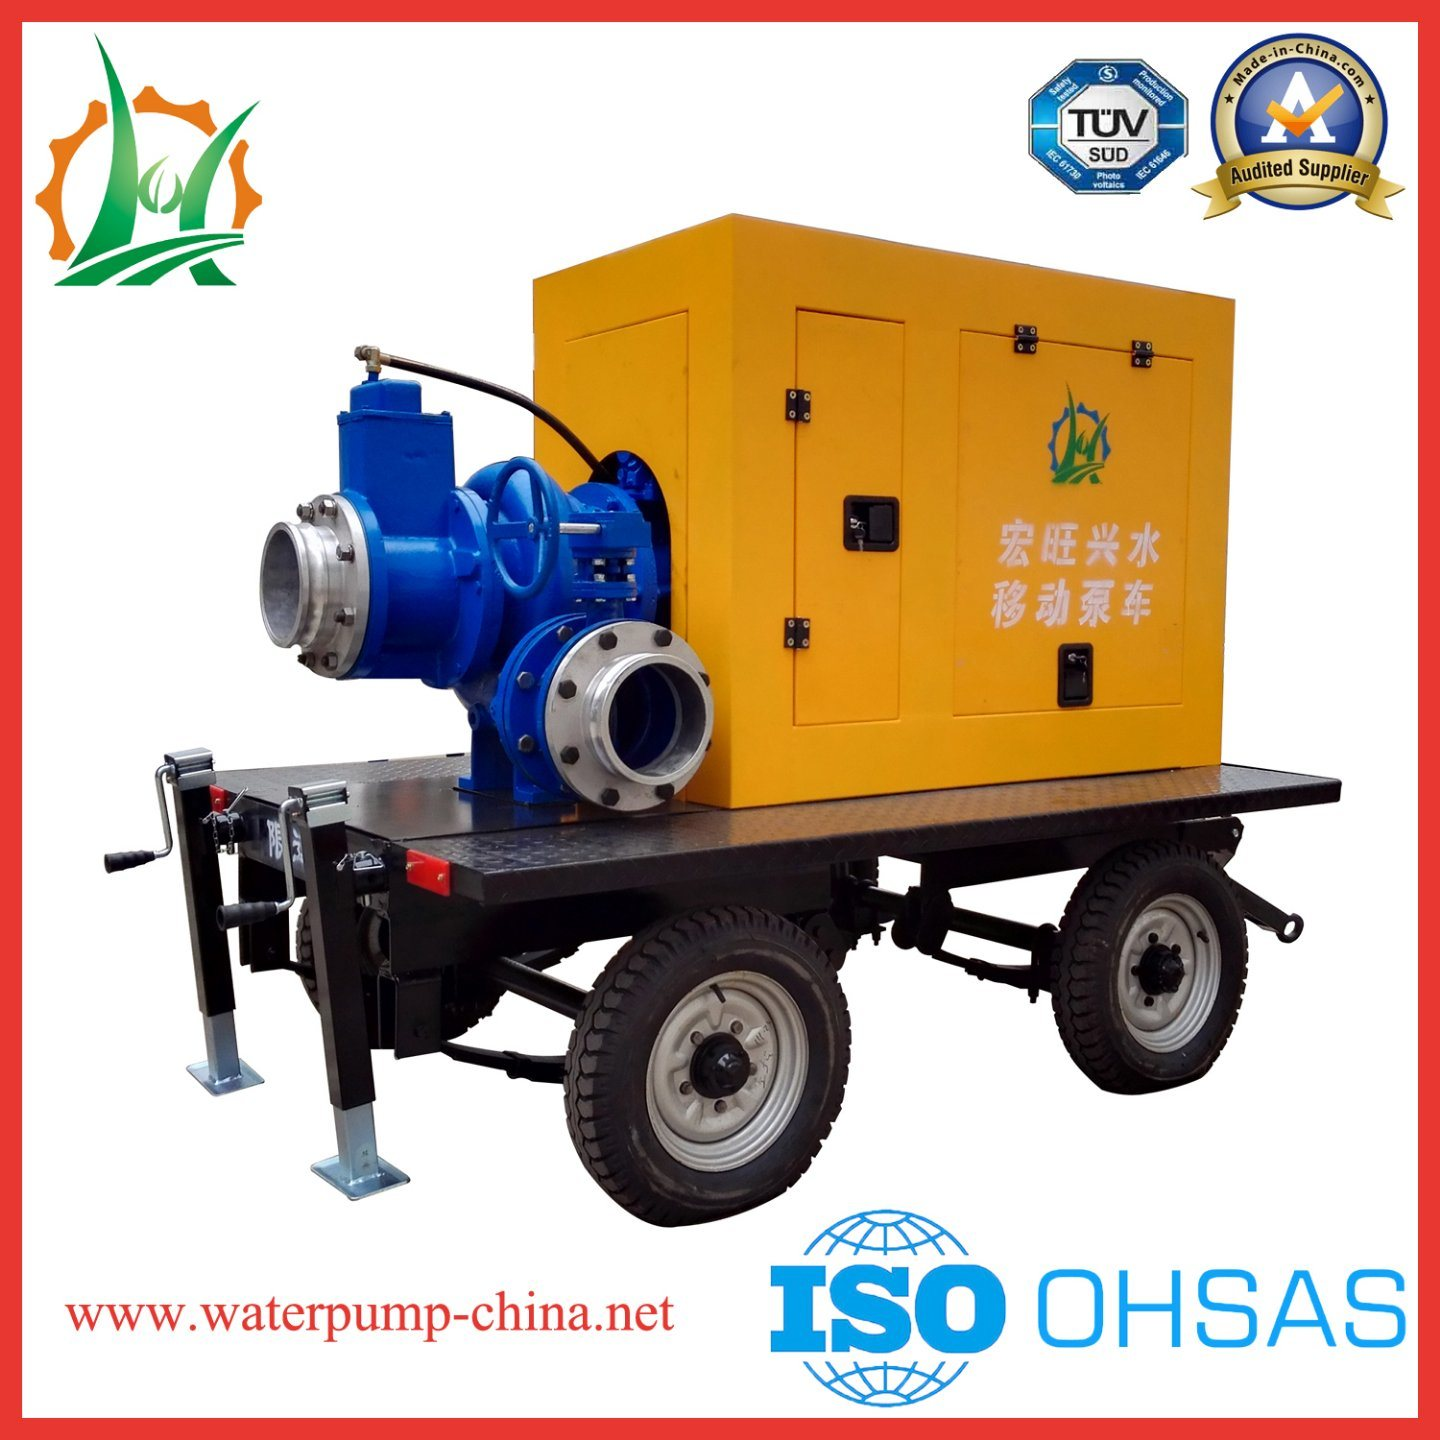 High Pressure Dry Run Self-Priming Diesel Water Pump for Drainage